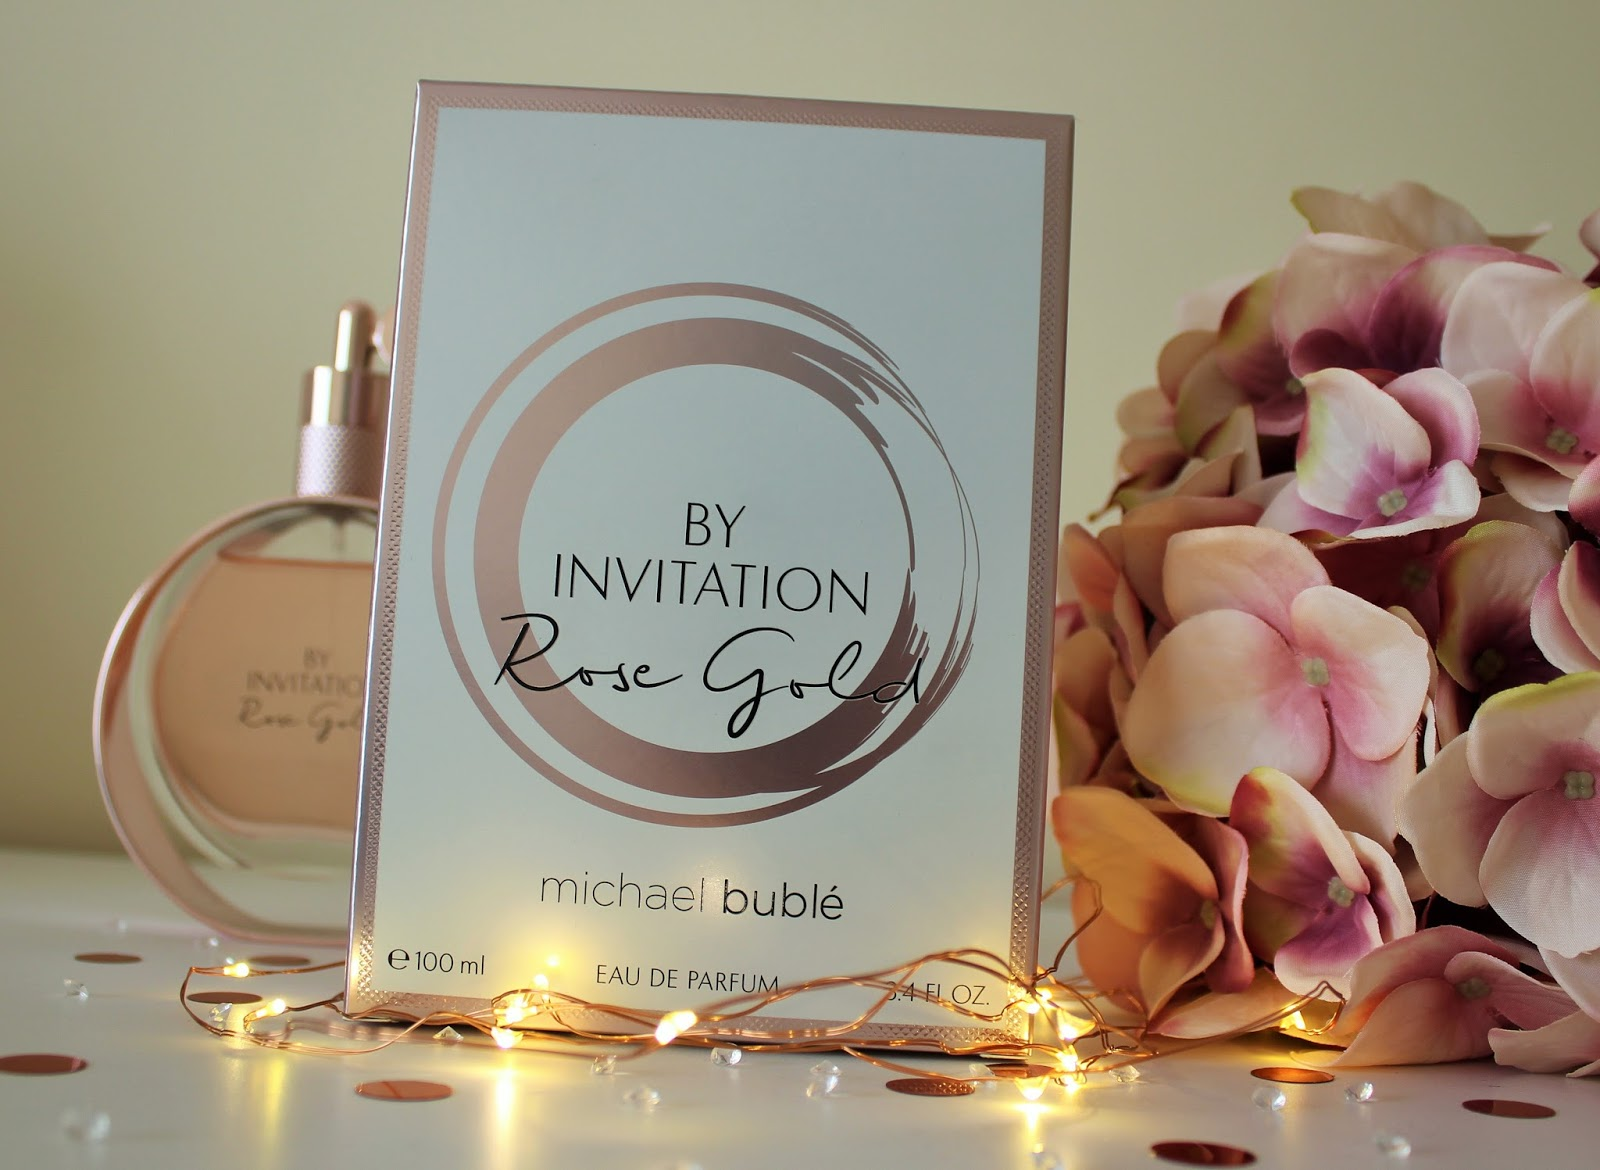 Michael Buble By Invitation Rose Gold Perfume Review - 2